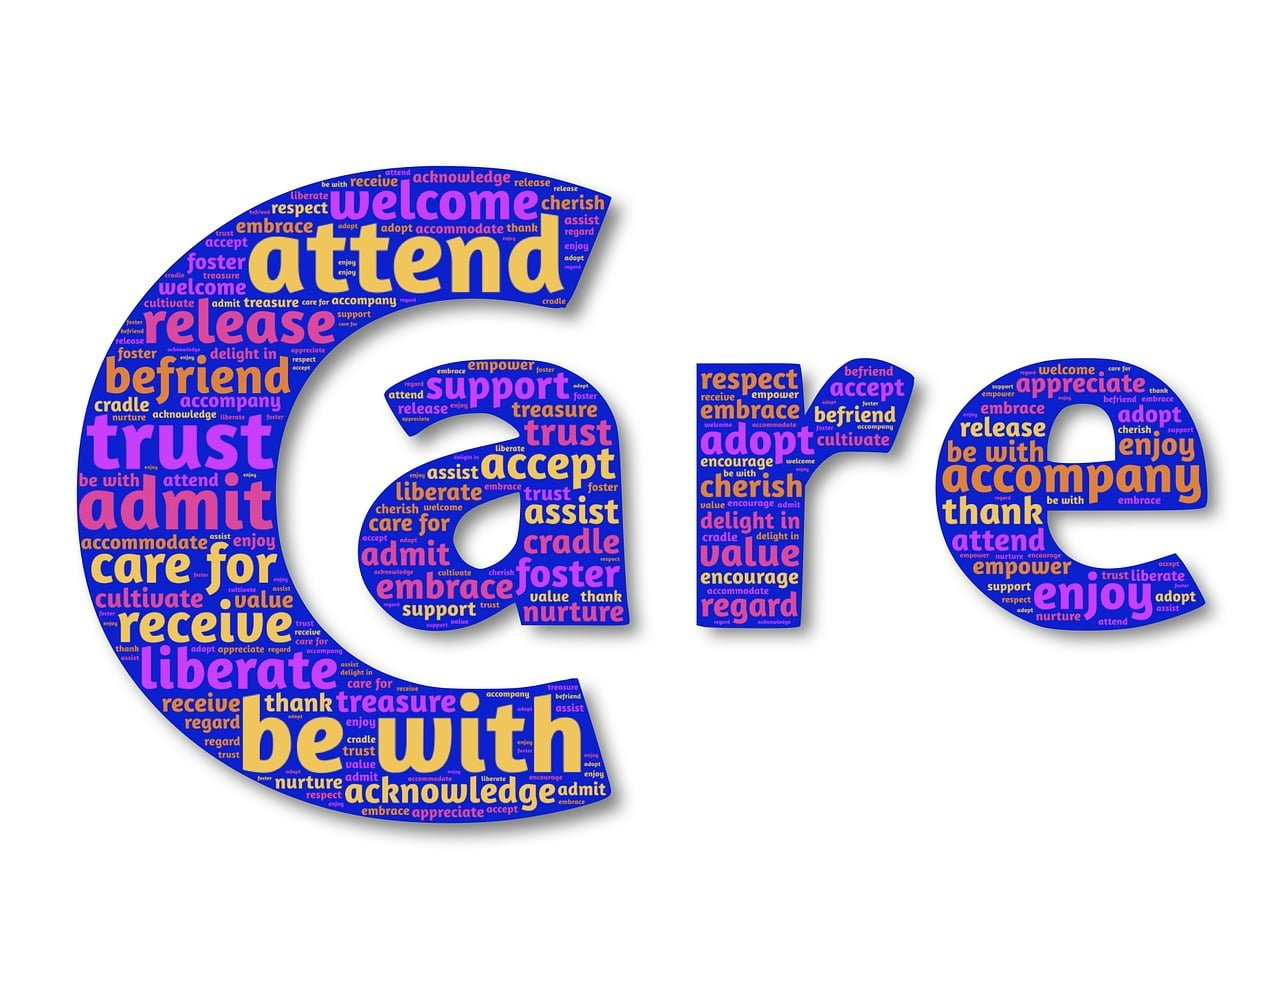 Care cloud tag image by John Hain from Pixabay